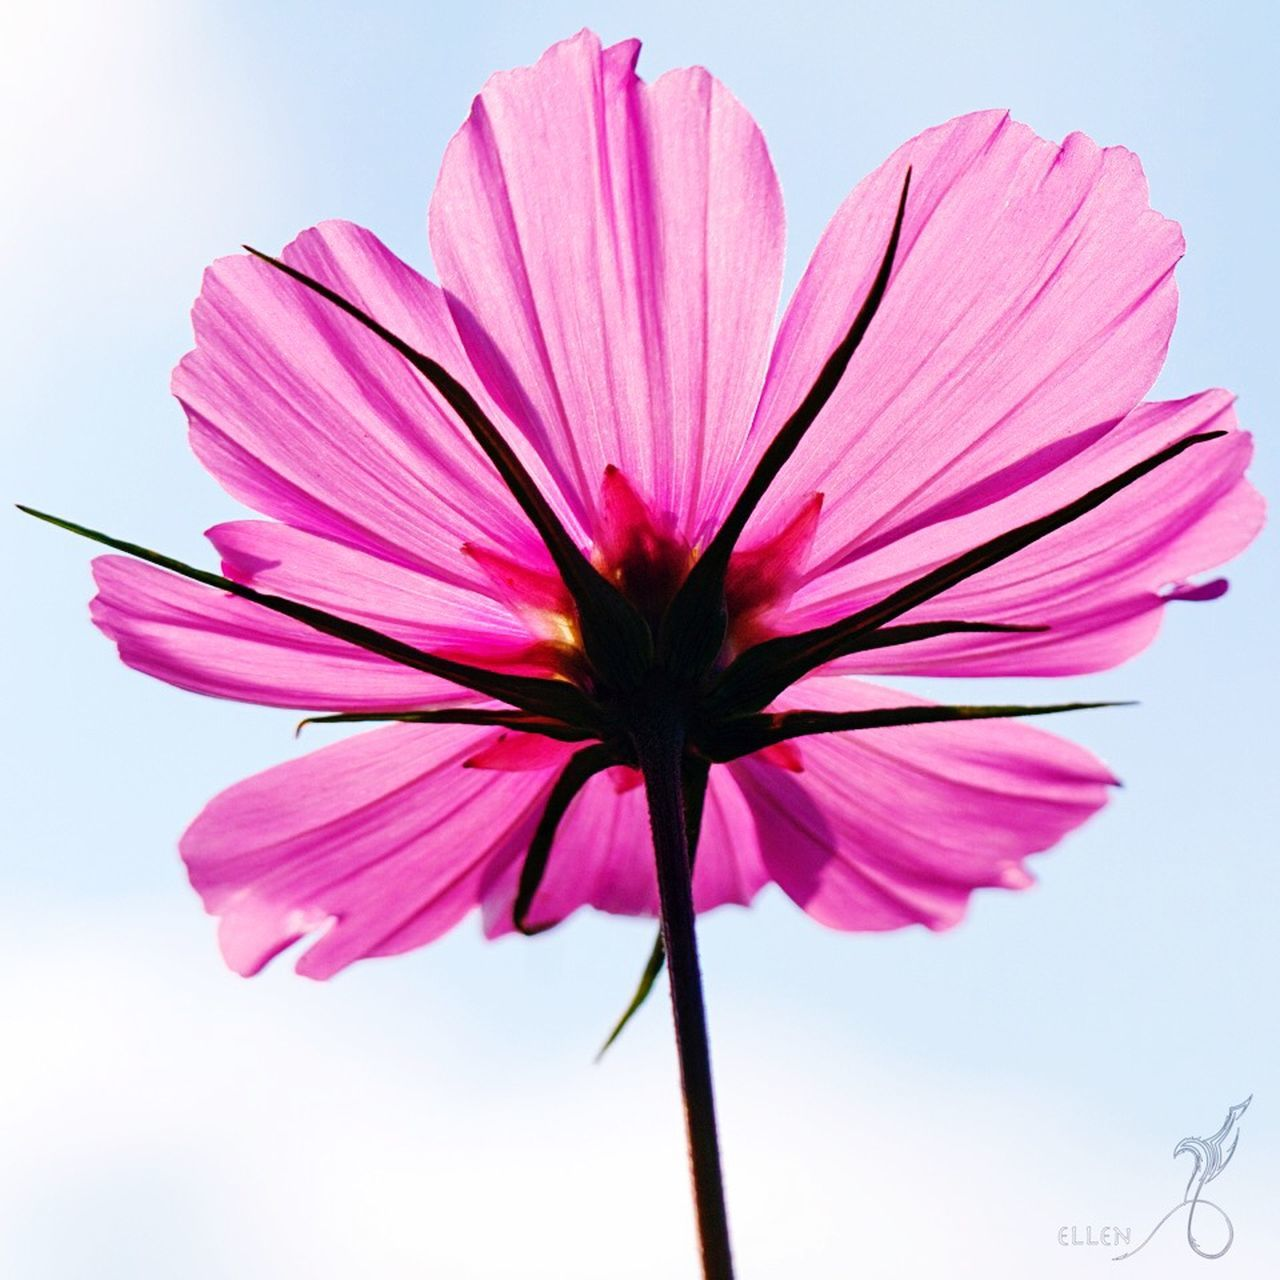 LOW ANGLE VIEW OF PINK FLOWERS